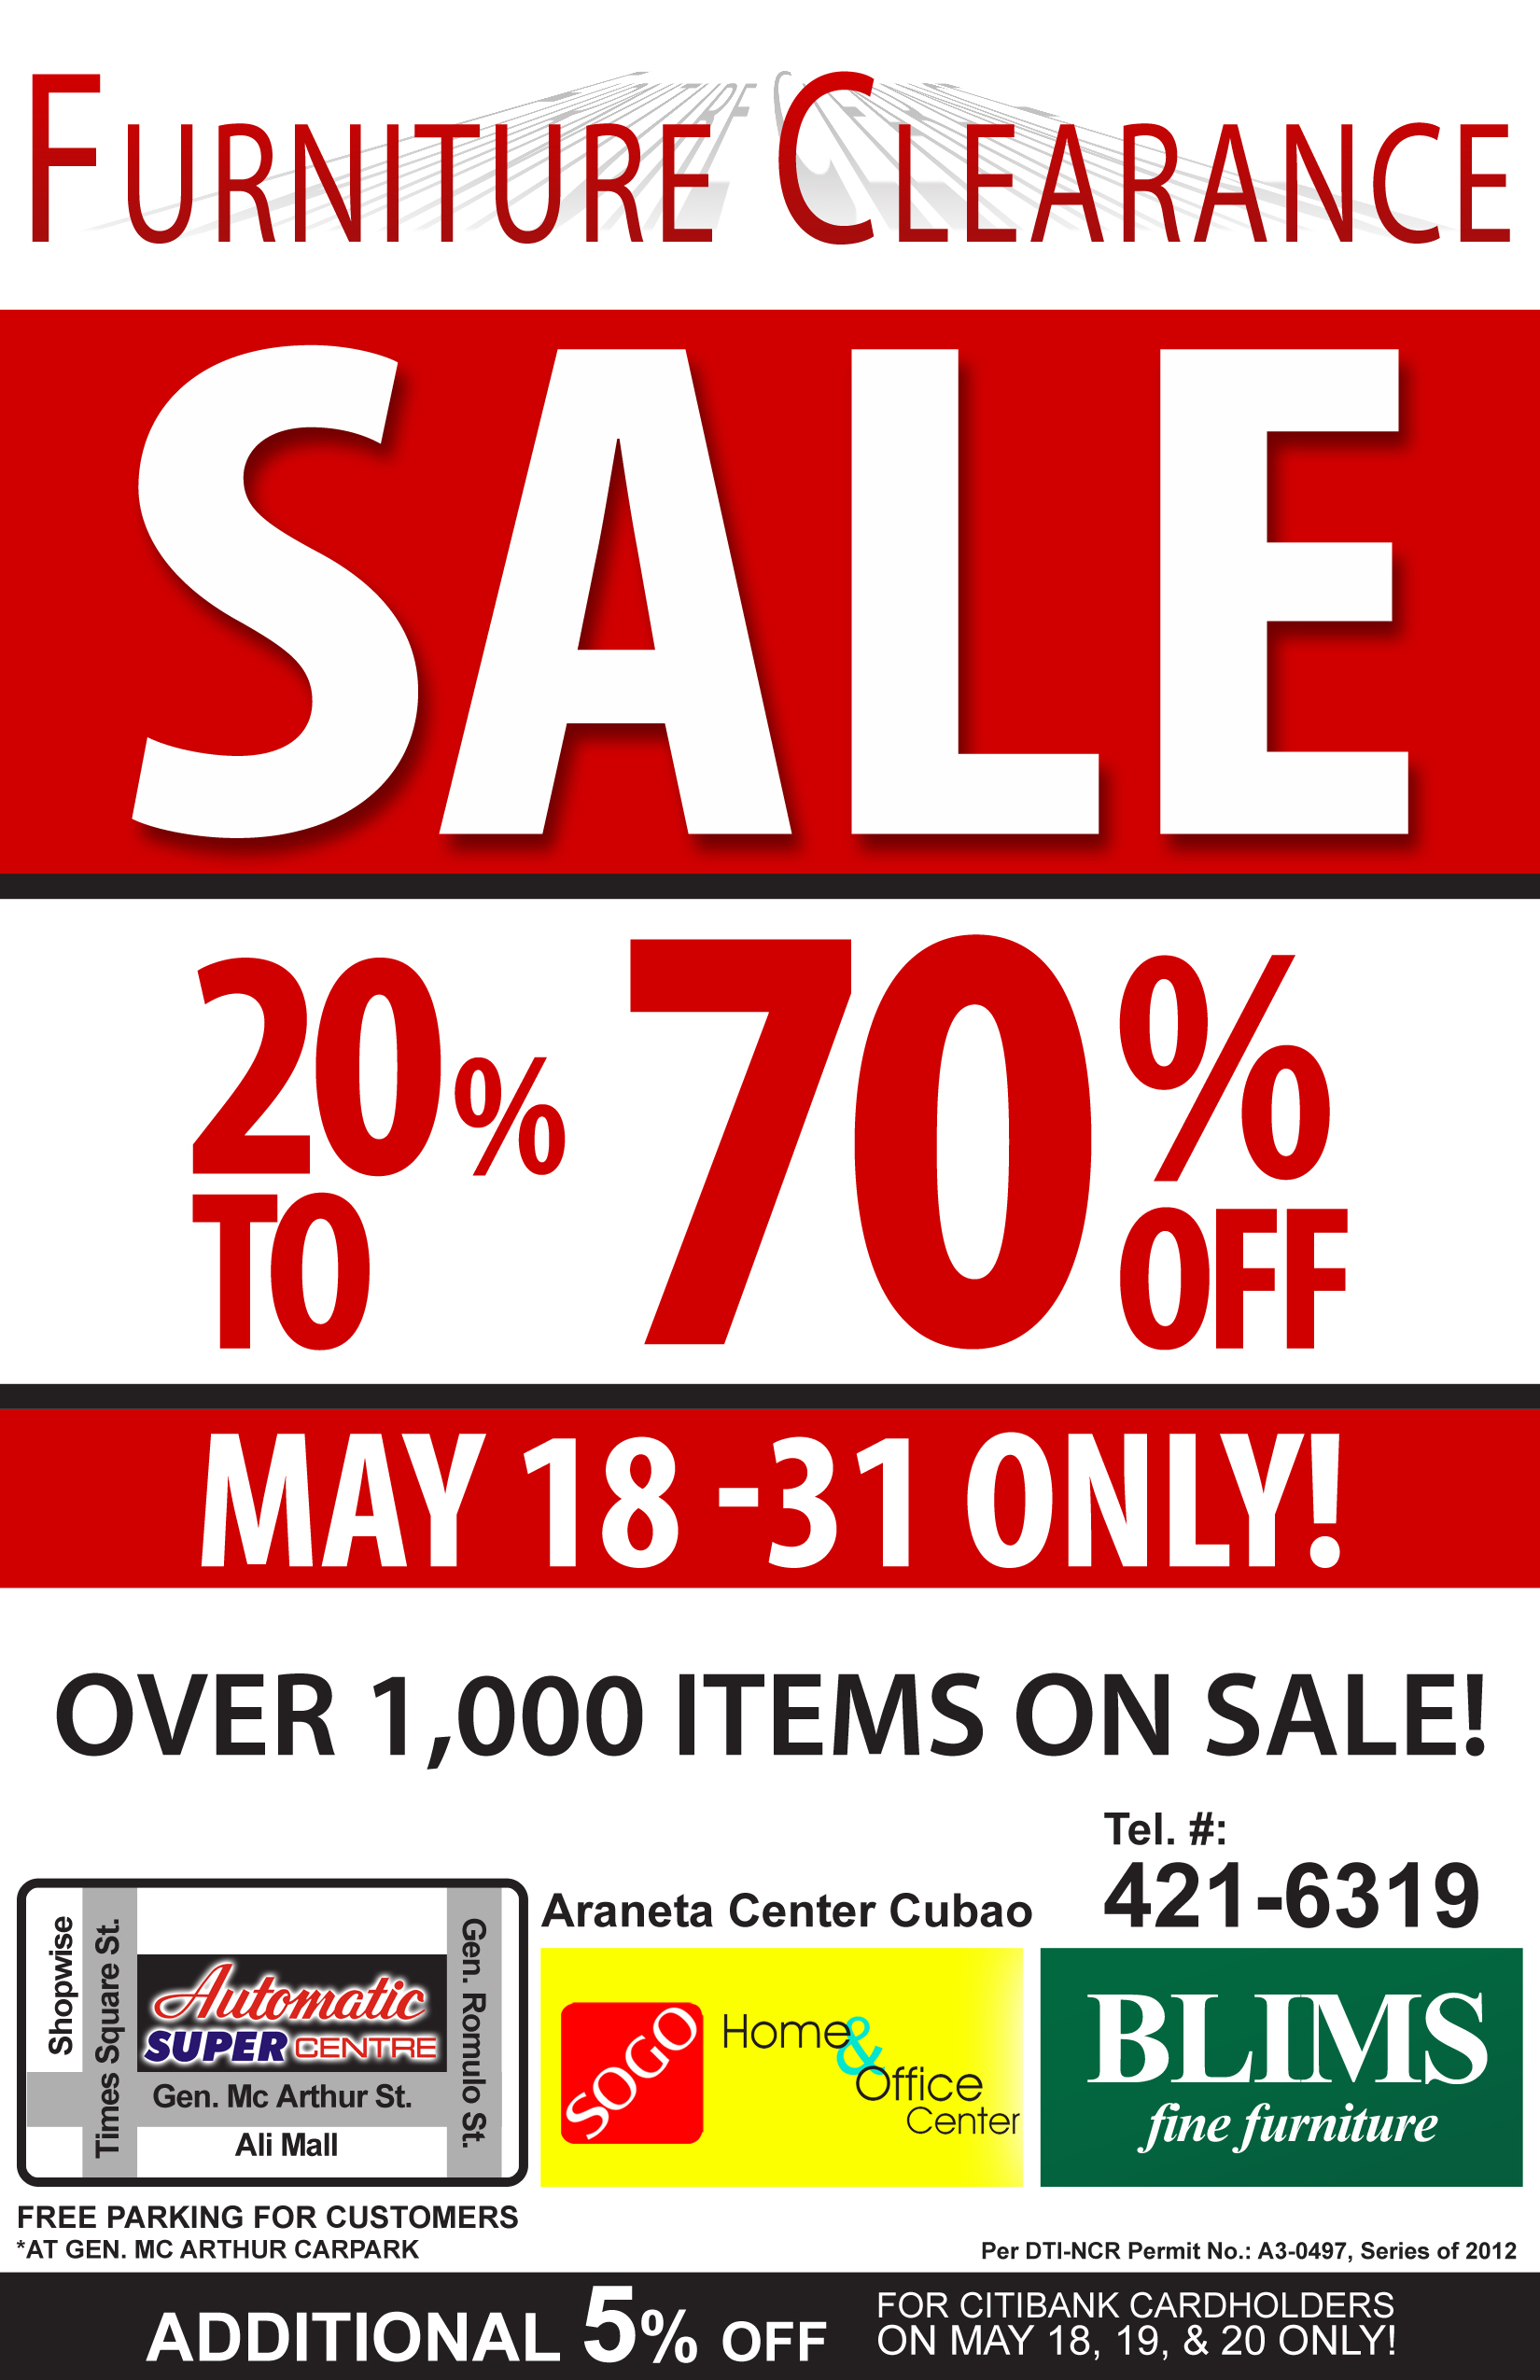 Blims sogo furniture clearance sale may 2012 manila on for Furnisher sale